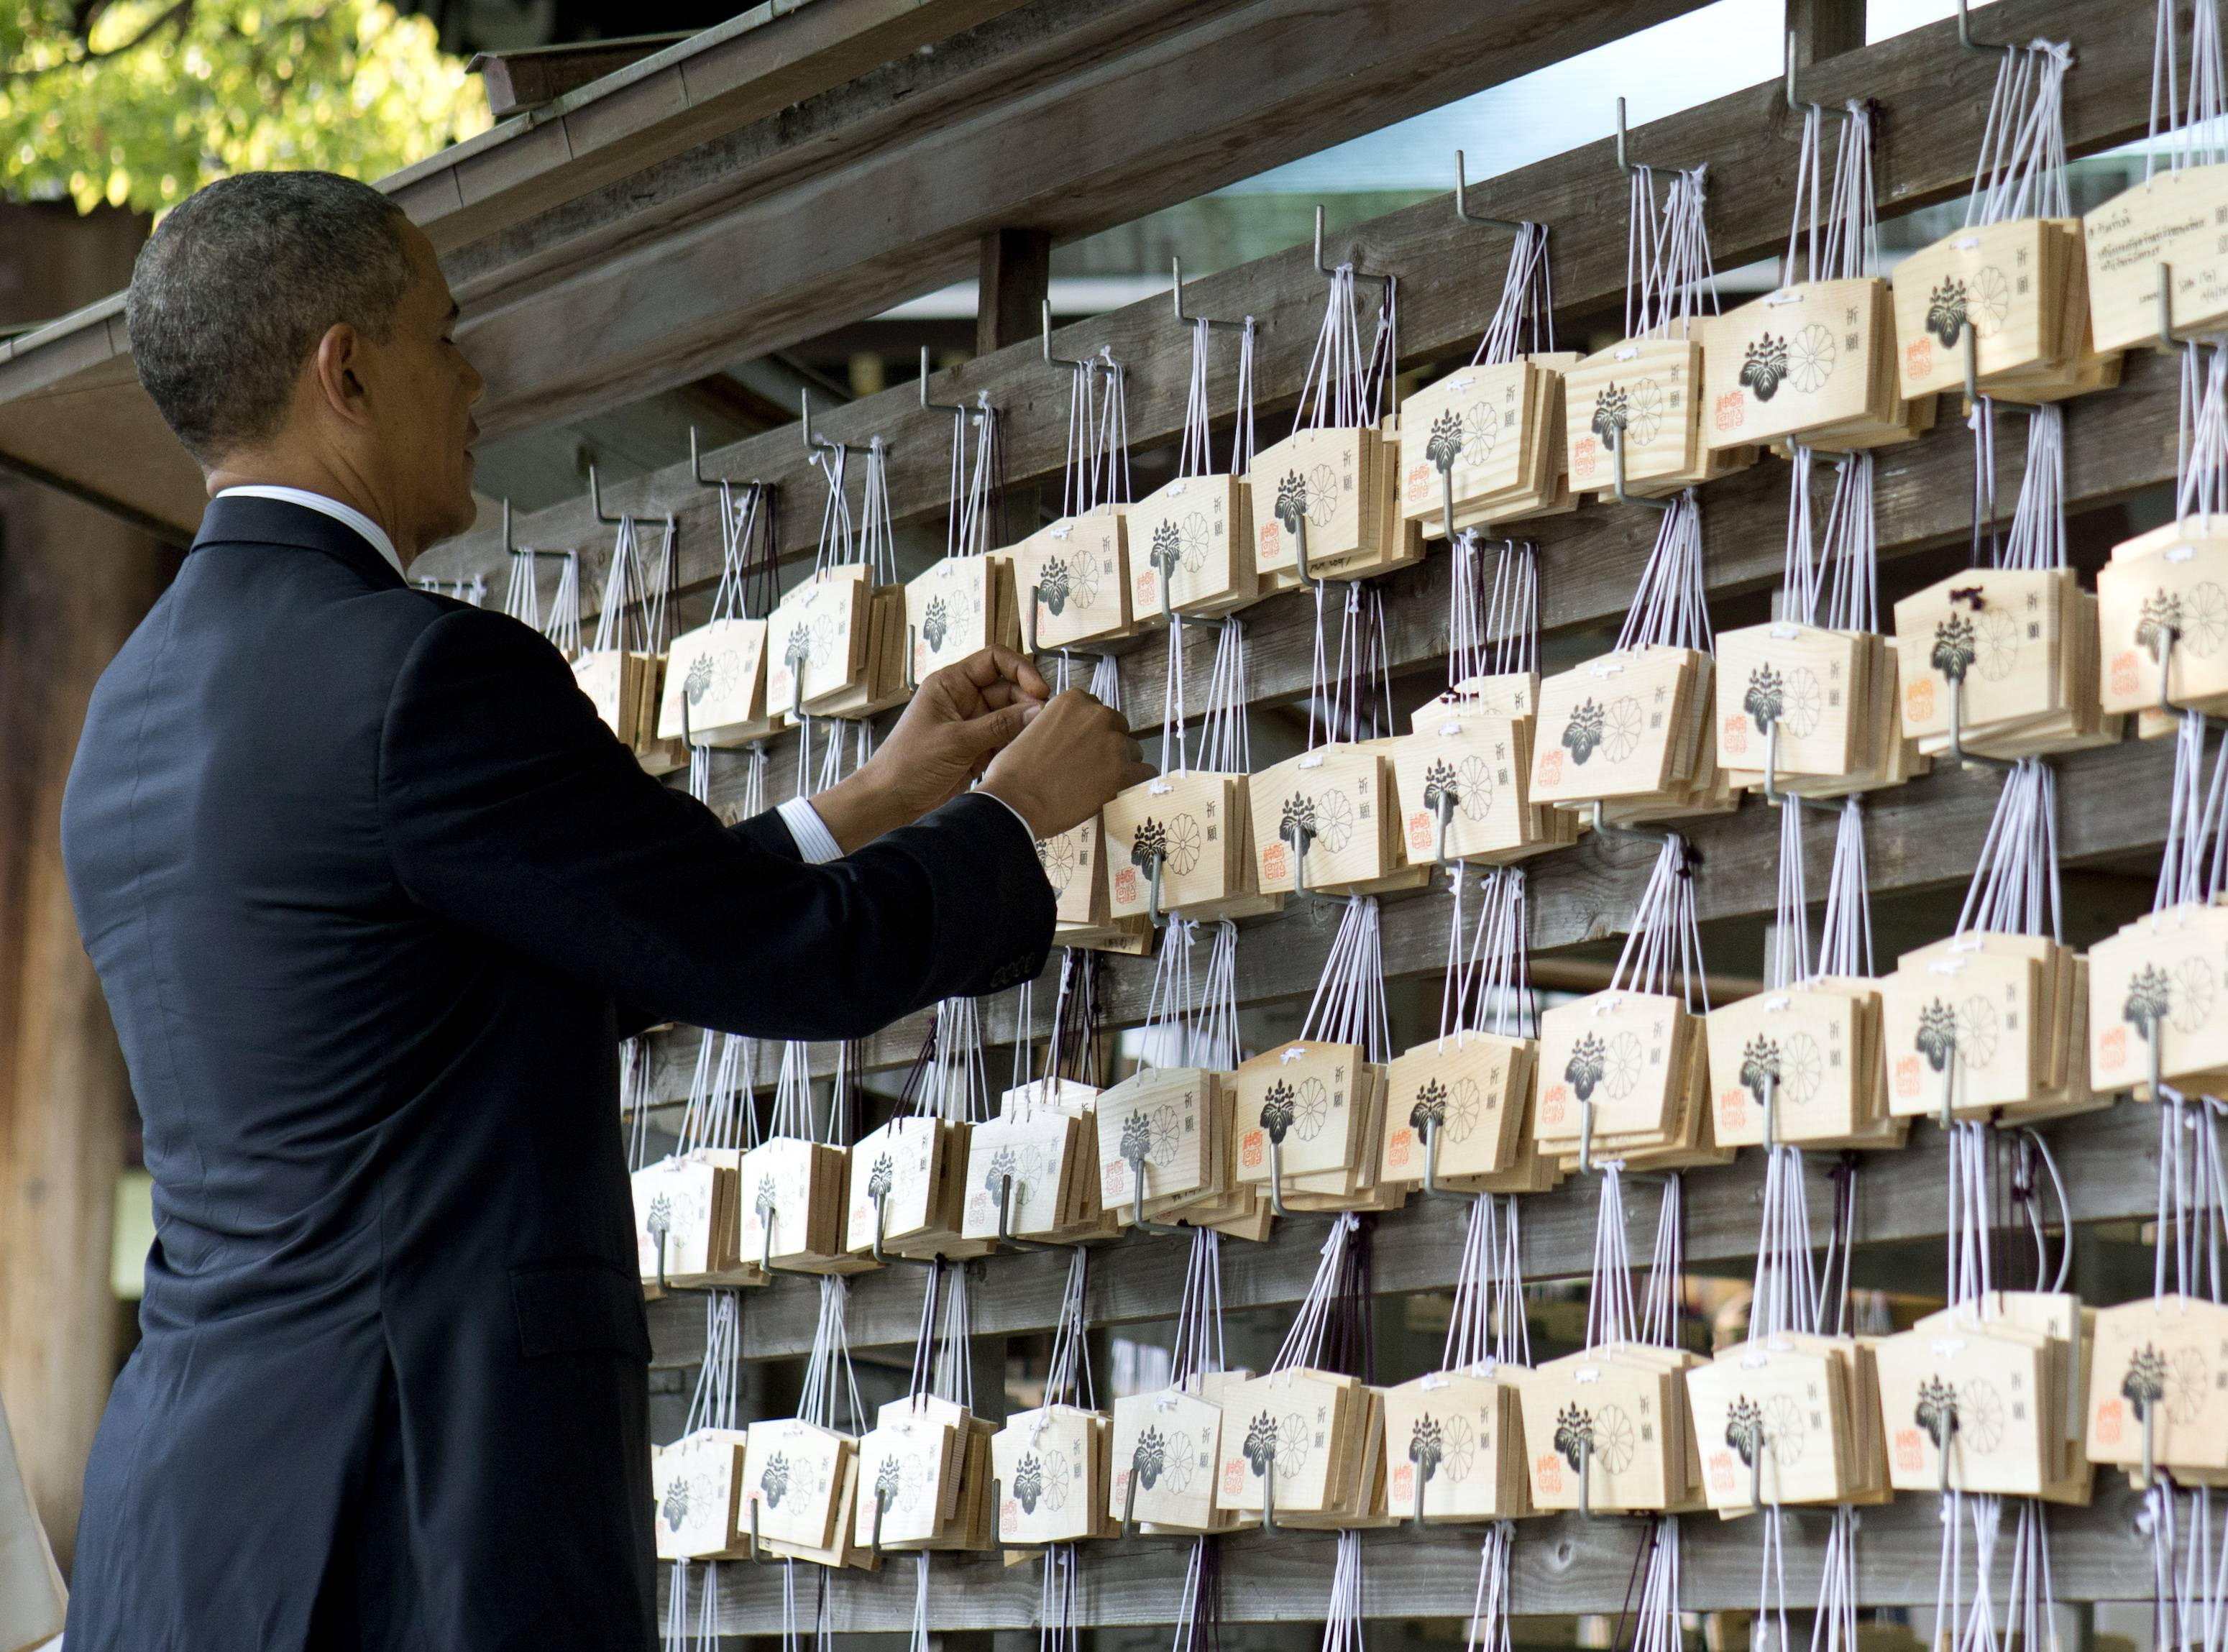 President Barack Obama places a prayer tablet on the Votive Tree as he tours Meiji Shrine in Tokyo Thursday. Showing solidarity with Japan, Obama affirmed Thursday that the U.S. would be obligated to defend Tokyo in a confrontation with Beijing over a set of disputed islands, but urged all sides to resolve the long-running dispute peacefully.